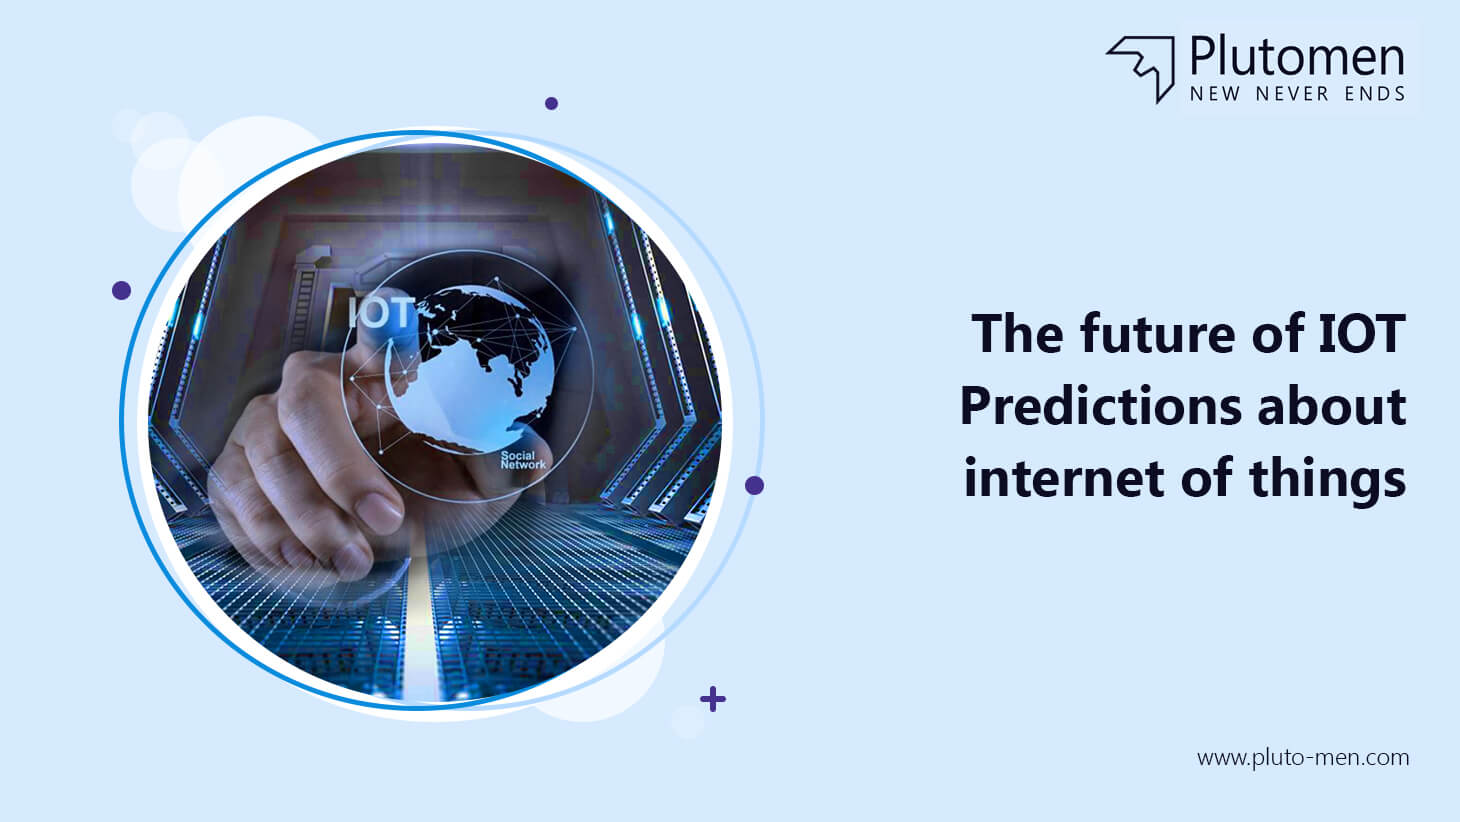 The Future of IoT: Predictions about Internet of Things